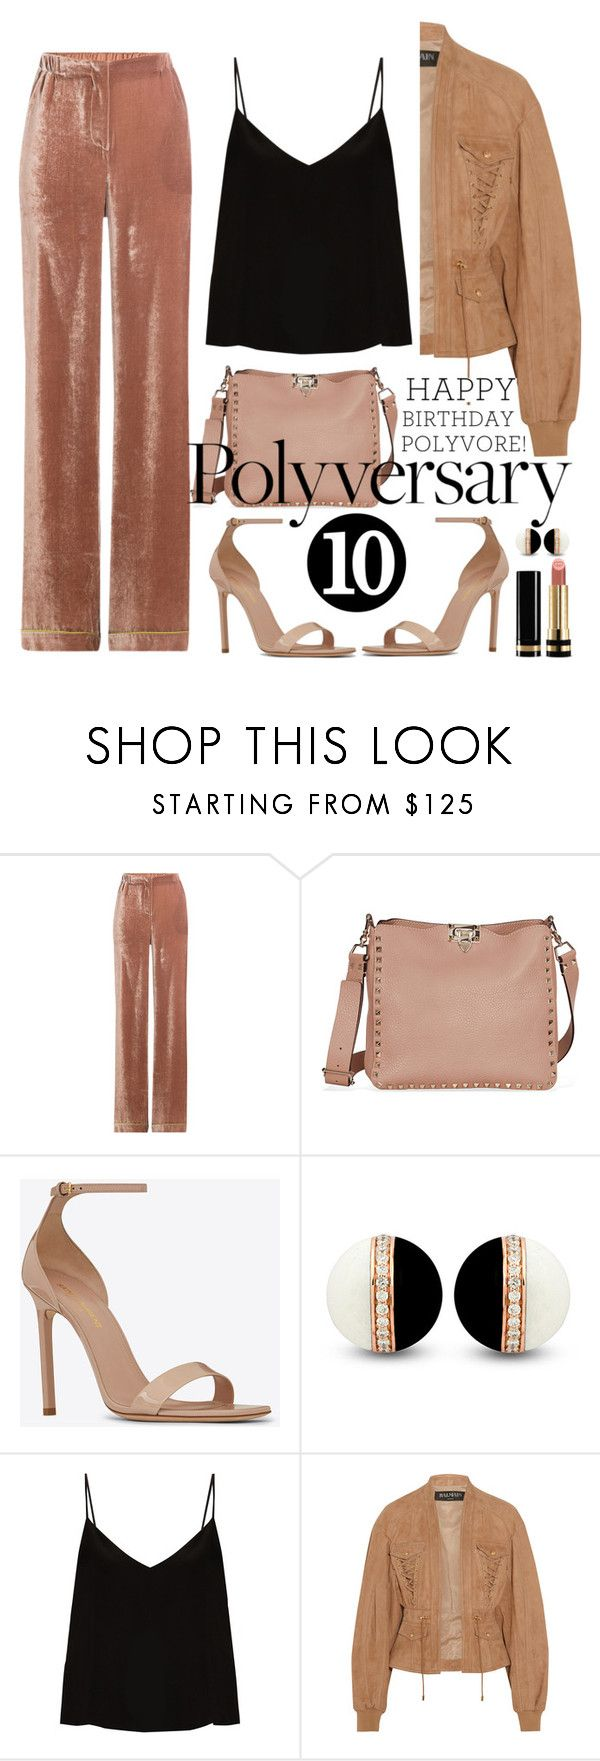 """""""Celebrate Our 10th Polyversary!"""" by licethfashion ❤ liked on Polyvore featuring Alberta Ferretti, Yves Saint Laurent, Raey, Balmain, Gucci, polyversary and contestentry"""